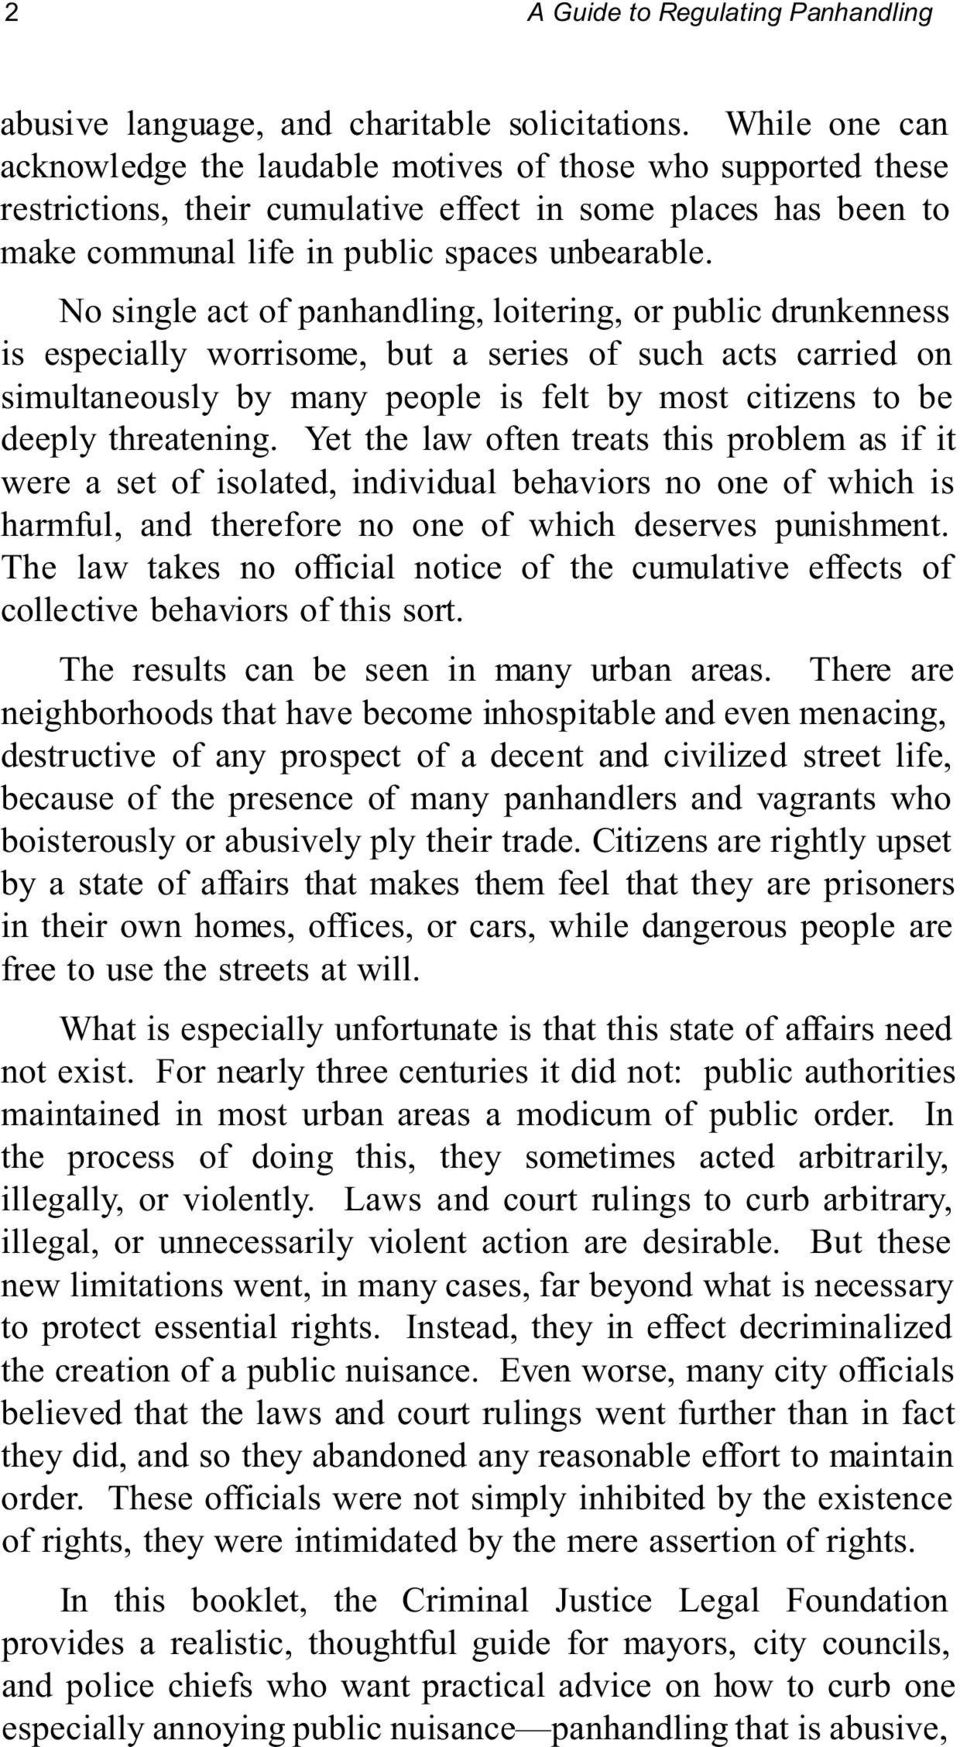 No single act of panhandling, loitering, or public drunkenness is especially worrisome, but a series of such acts carried on simultaneously by many people is felt by most citizens to be deeply